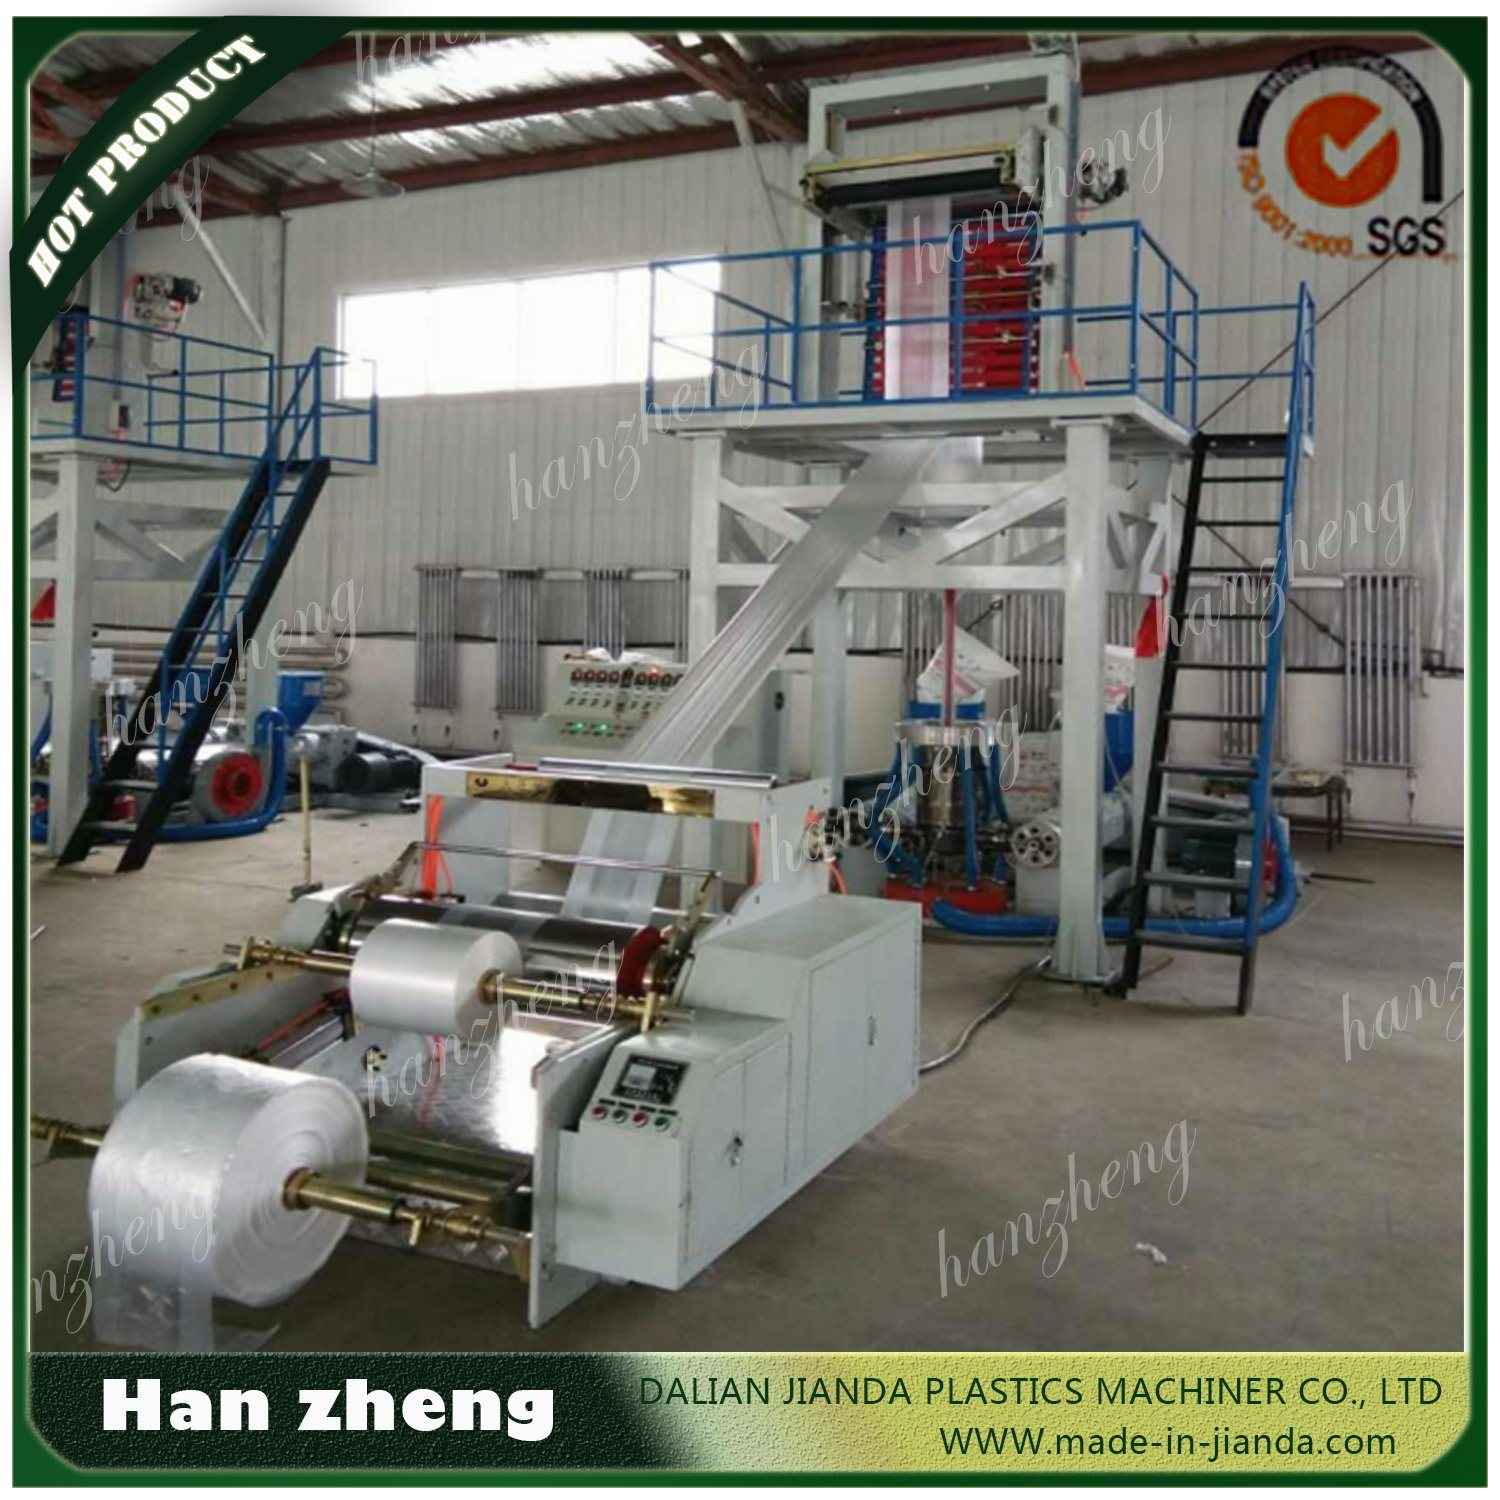 ABA Low Pressure Film Blowing Machine for Shopping Bag Sjm-Z45-2-850